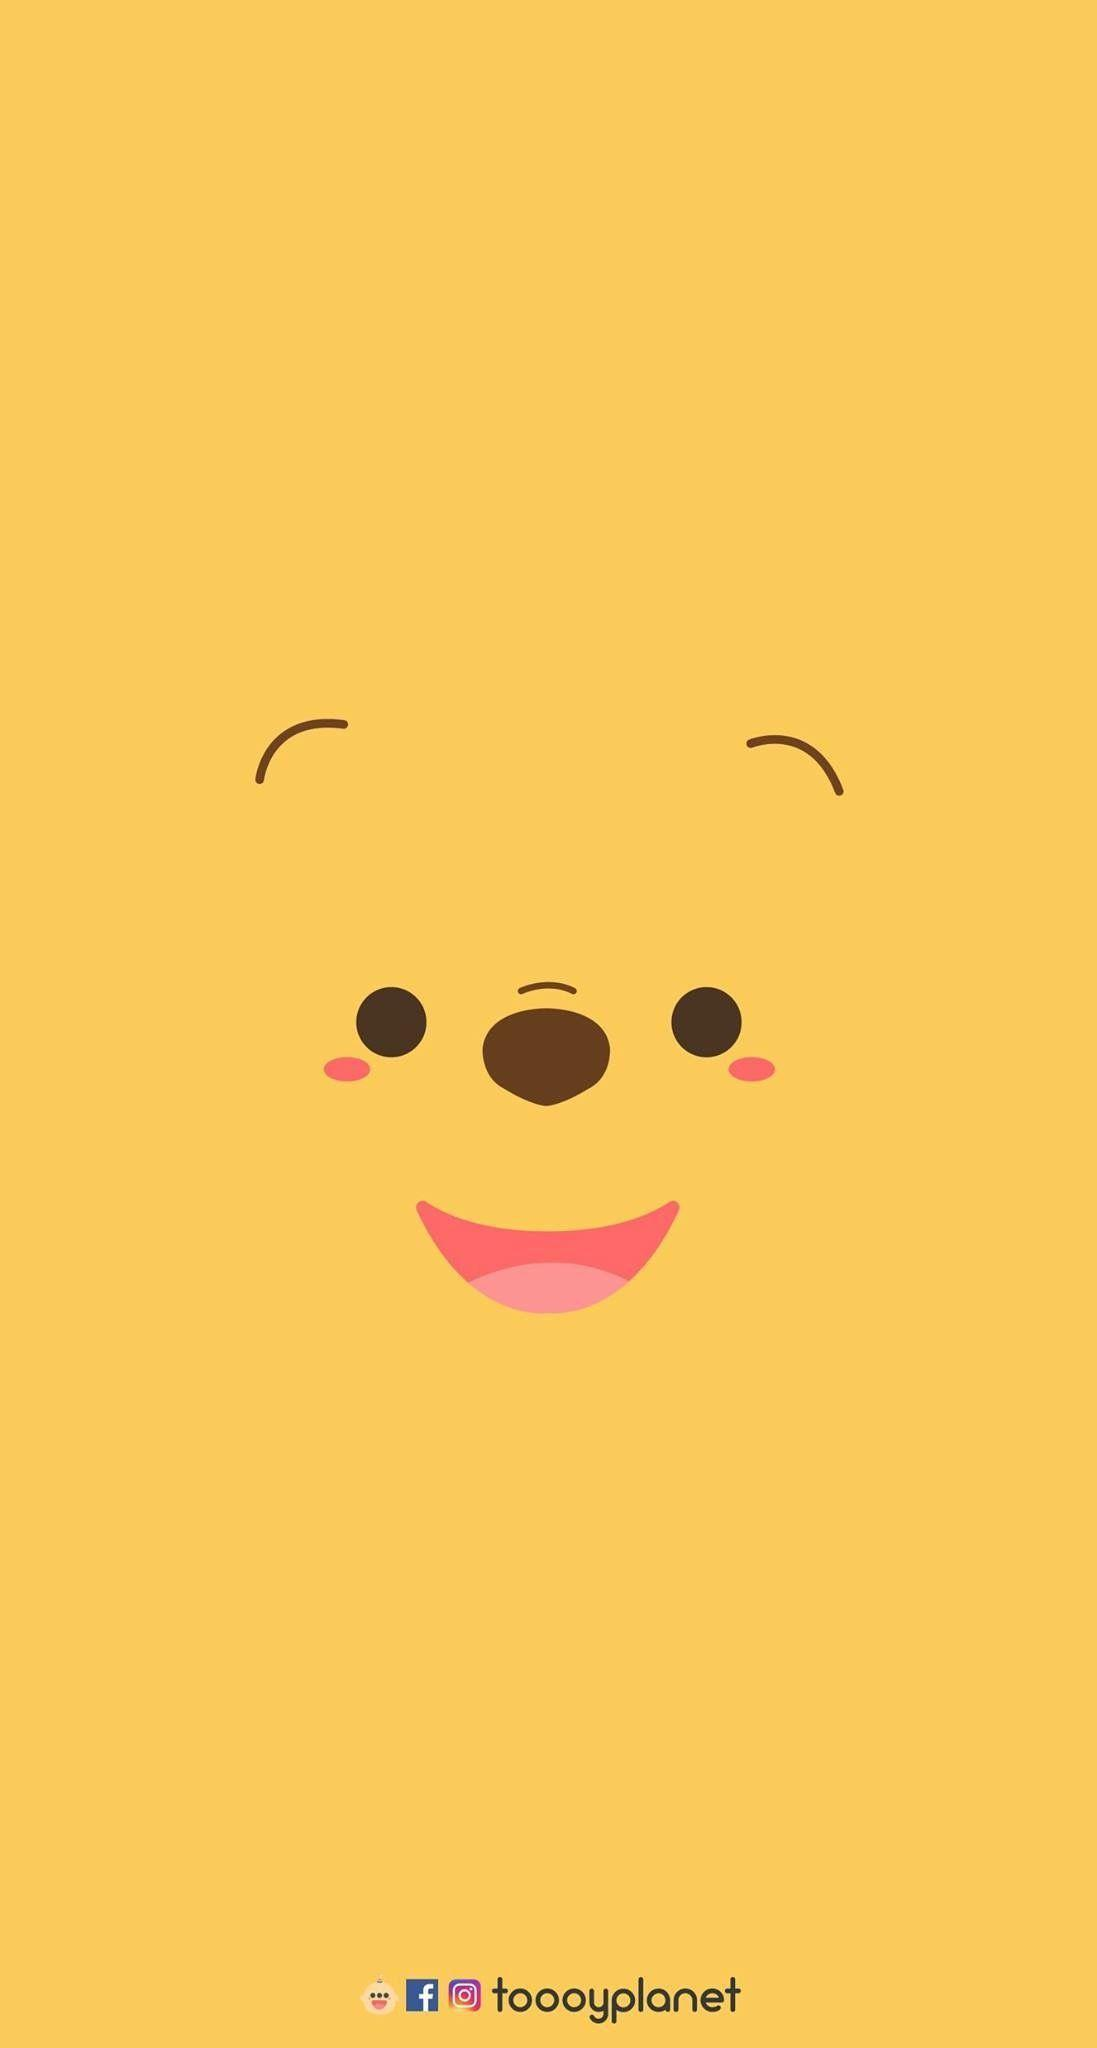 Winnie The Pooh Aesthetic Wallpapers Wallpaper Cave